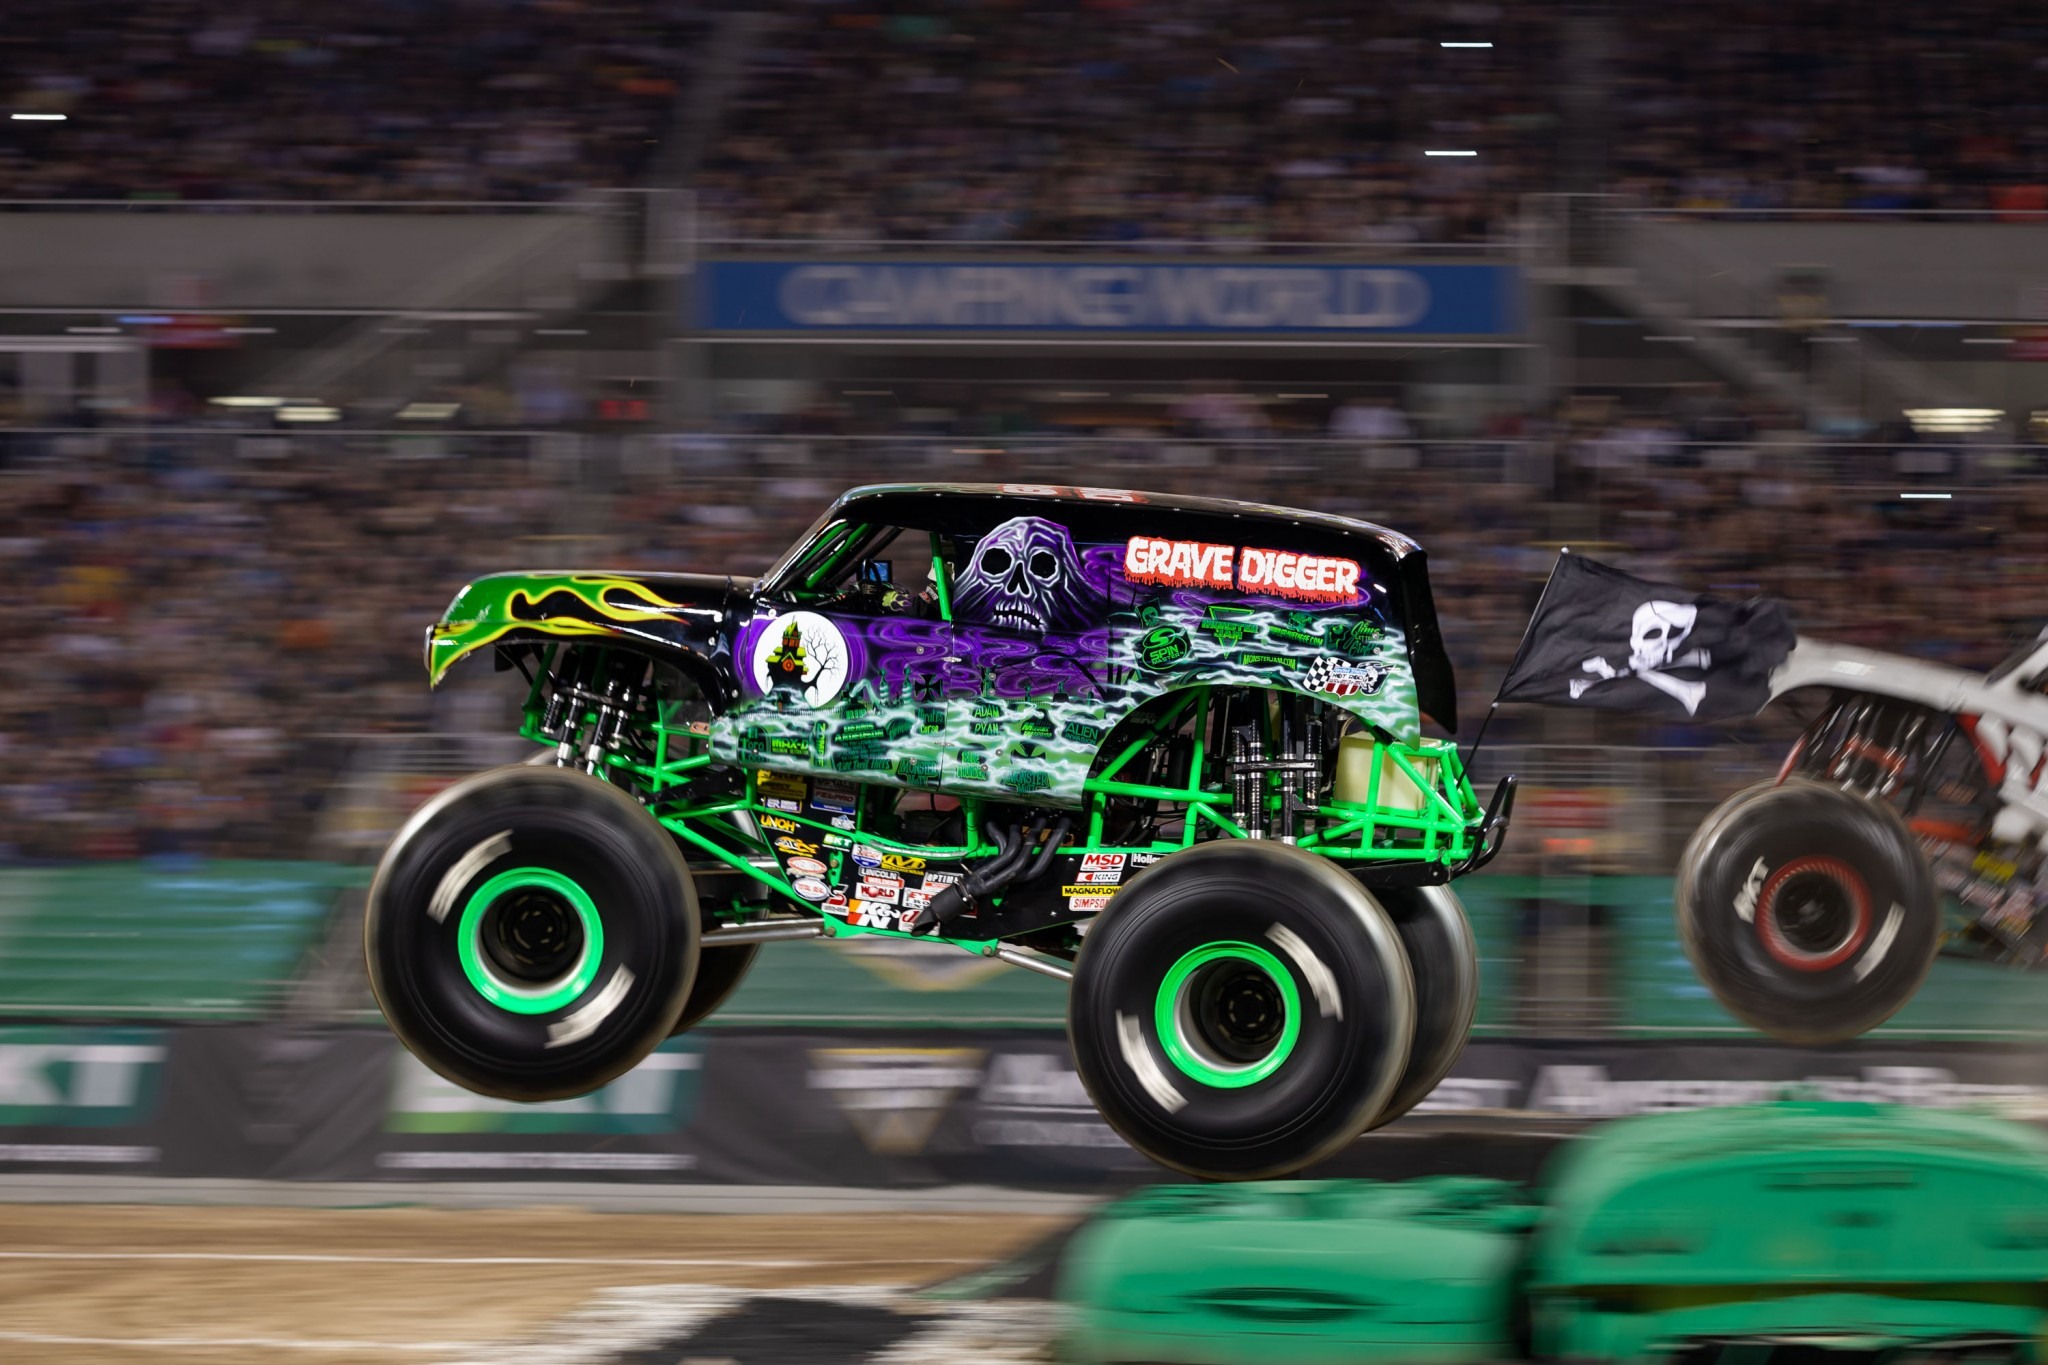 """The all-star truck lineup at Monster Jam, coming to Toledo's Huntington Center Aug. 27-29, will feature many fan favorites including Tyler Menninga in the legendary Grave Digger, the truck that redefined the phrase """"big air."""" (Photo courtesy of Feld Entertainment)"""